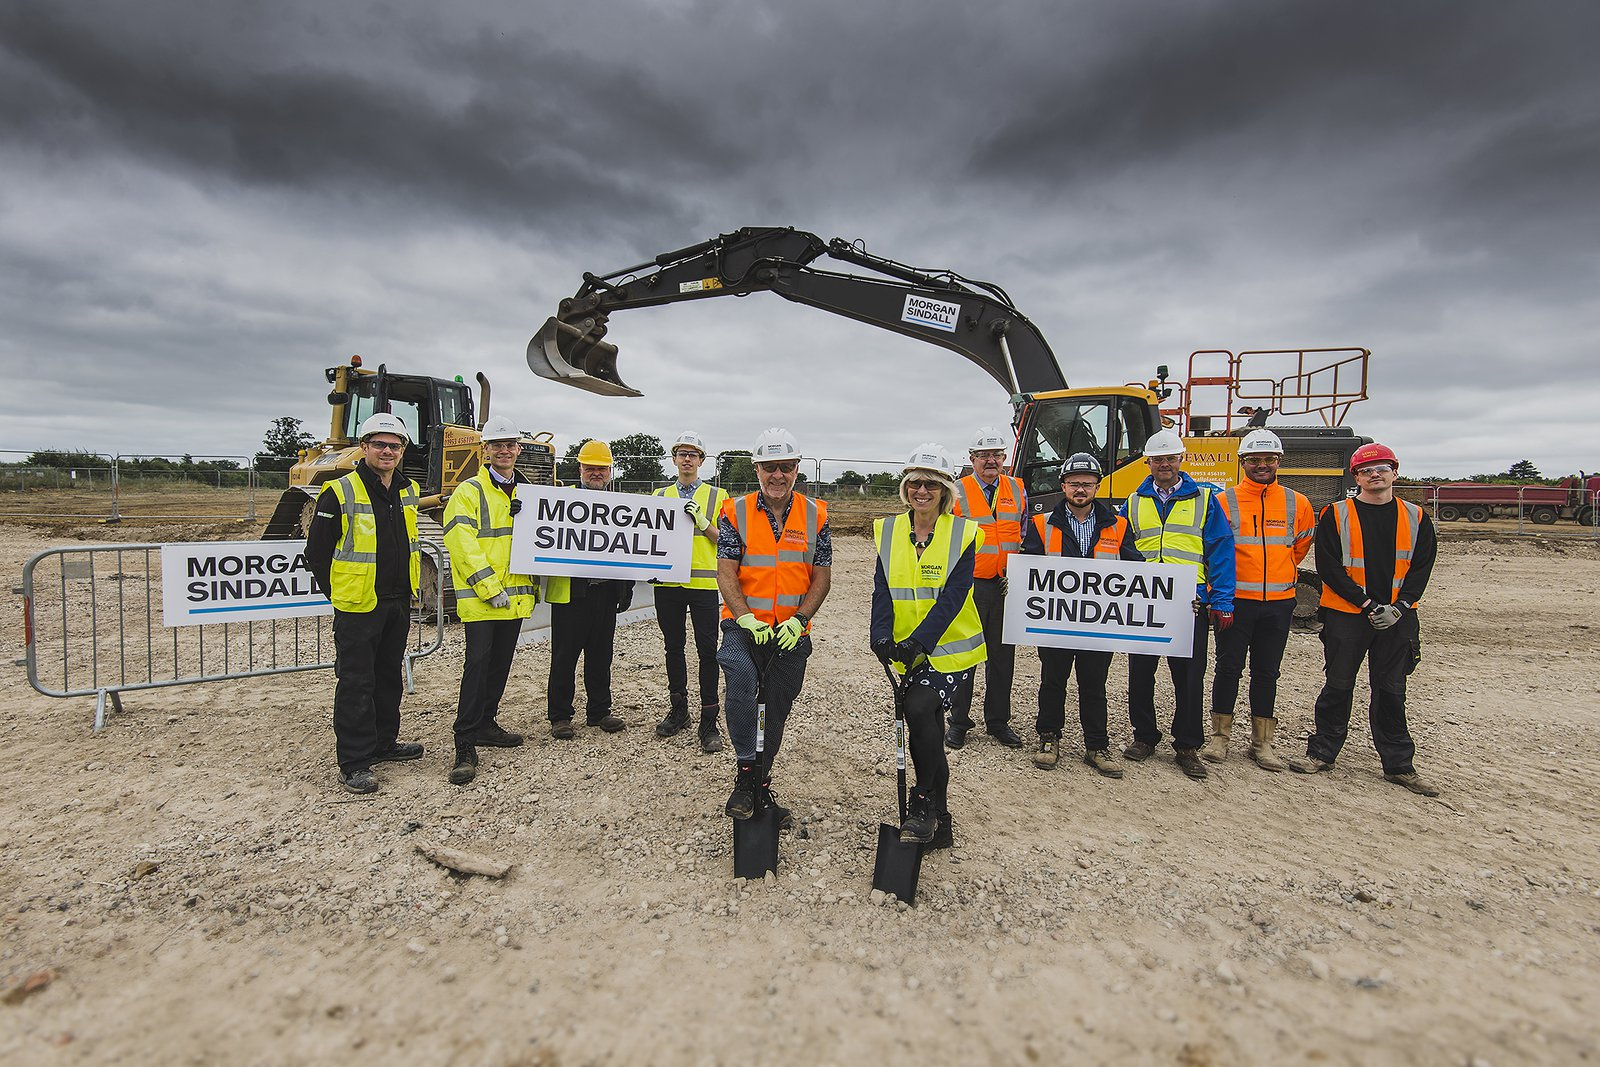 Picture of the Morgan Sindall Construction team and stakeholders at the Hethersett Primary School ground breaking event